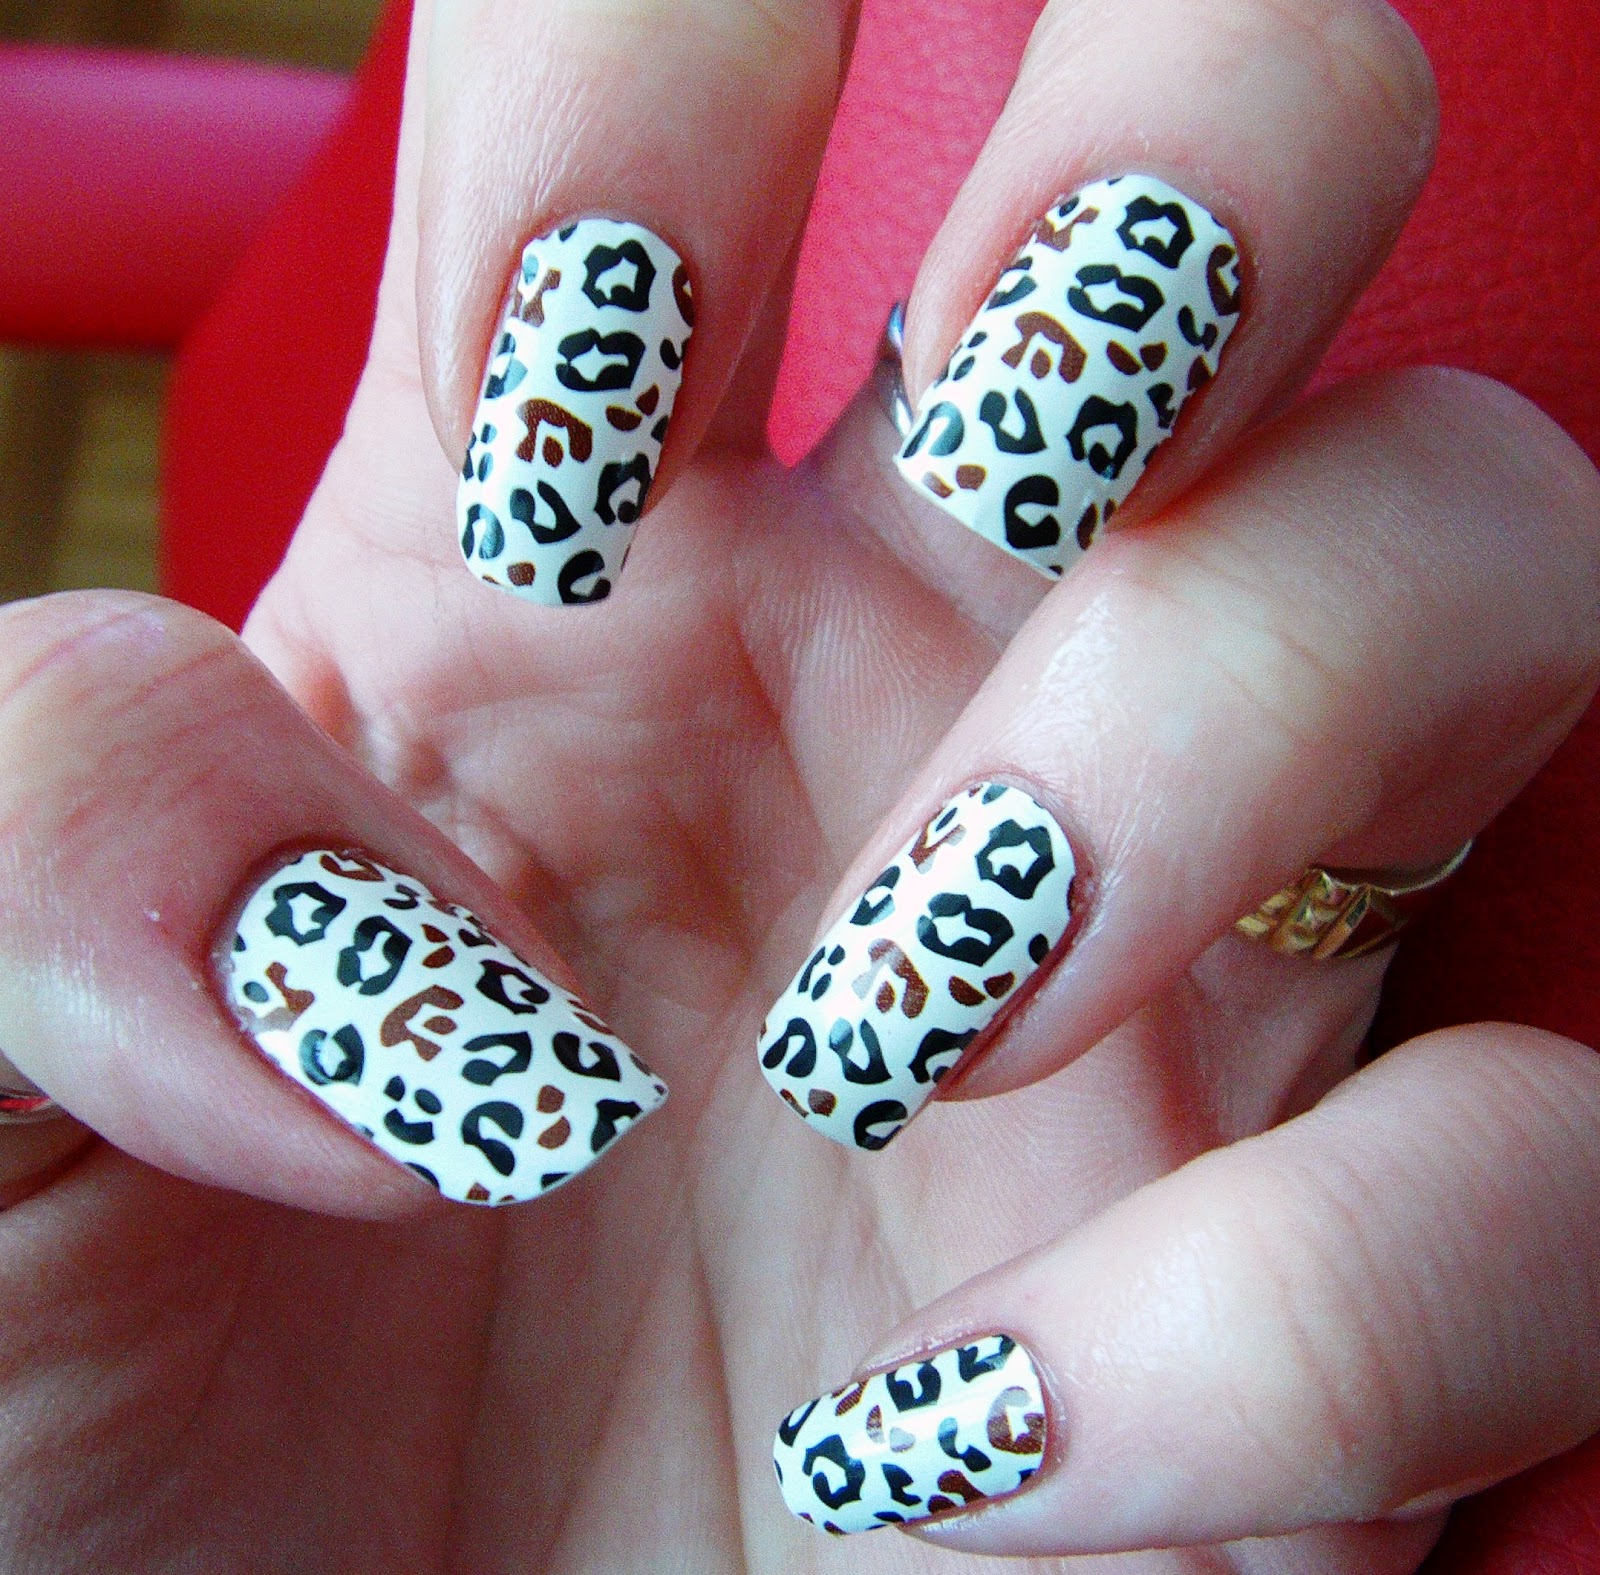 Cheetah nail designs